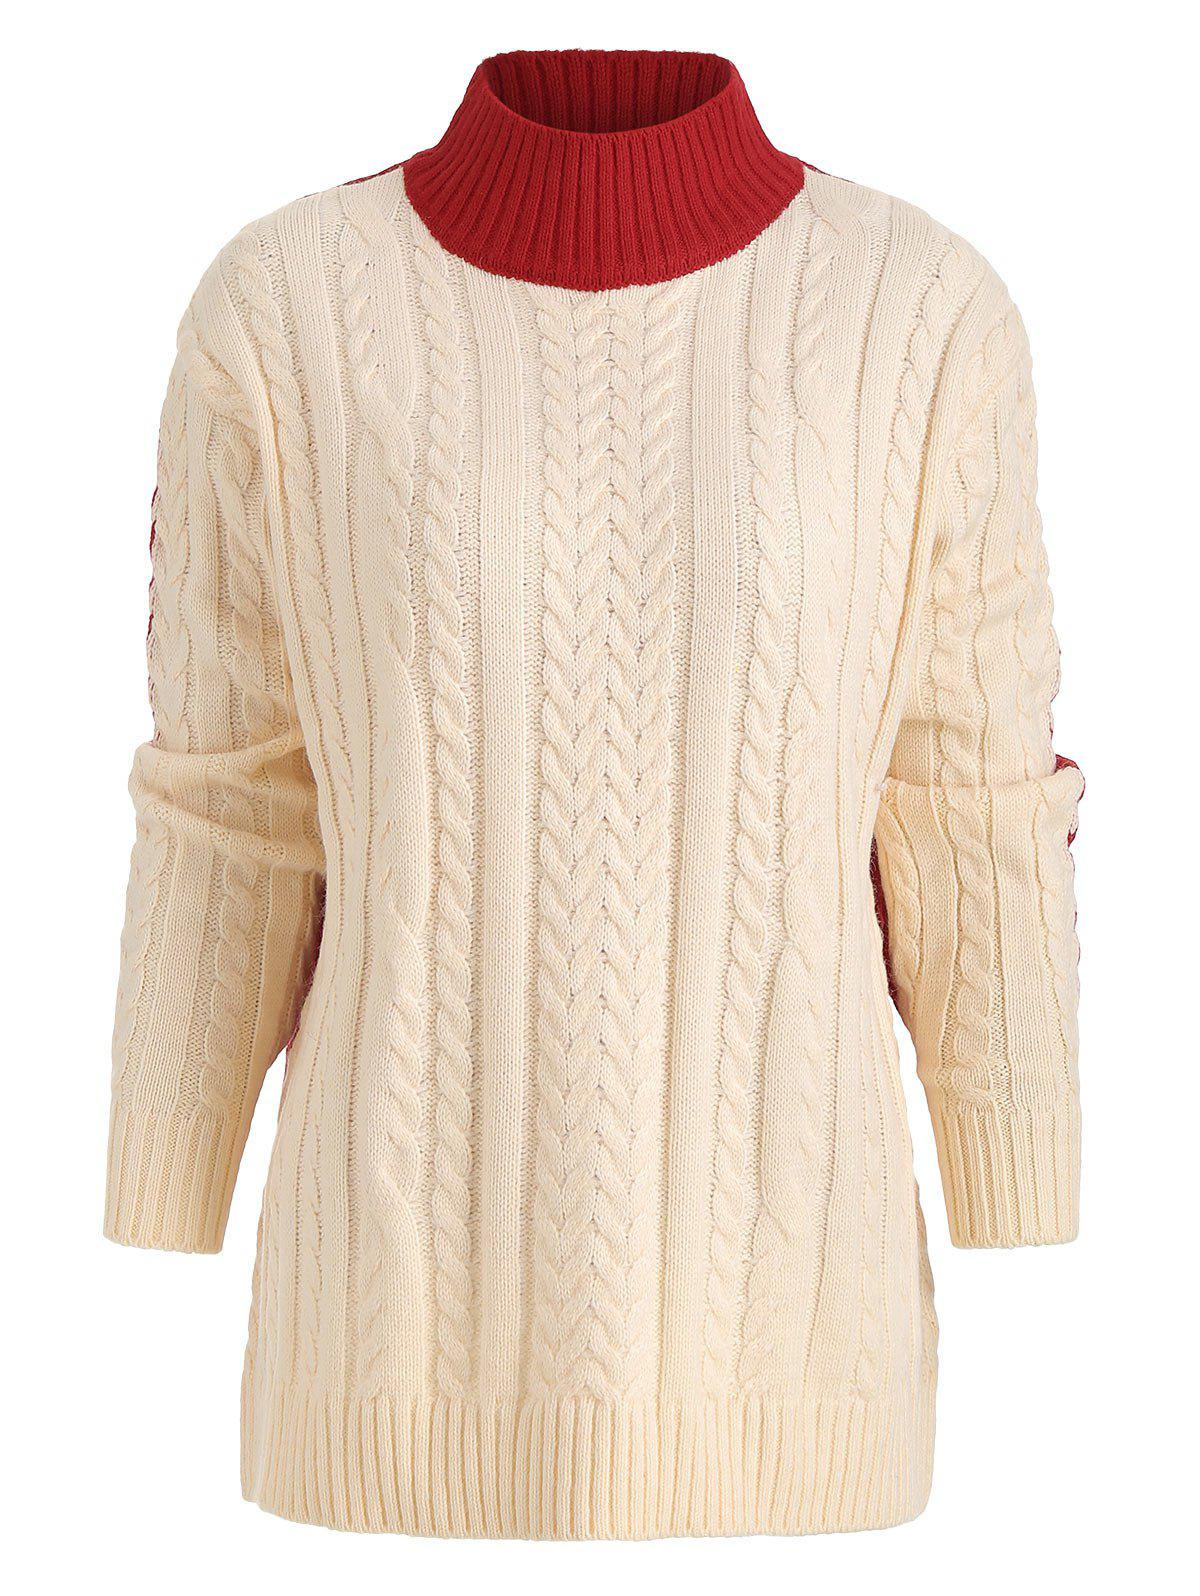 Buy Color Block Crew Neck Cable Knit Sweater